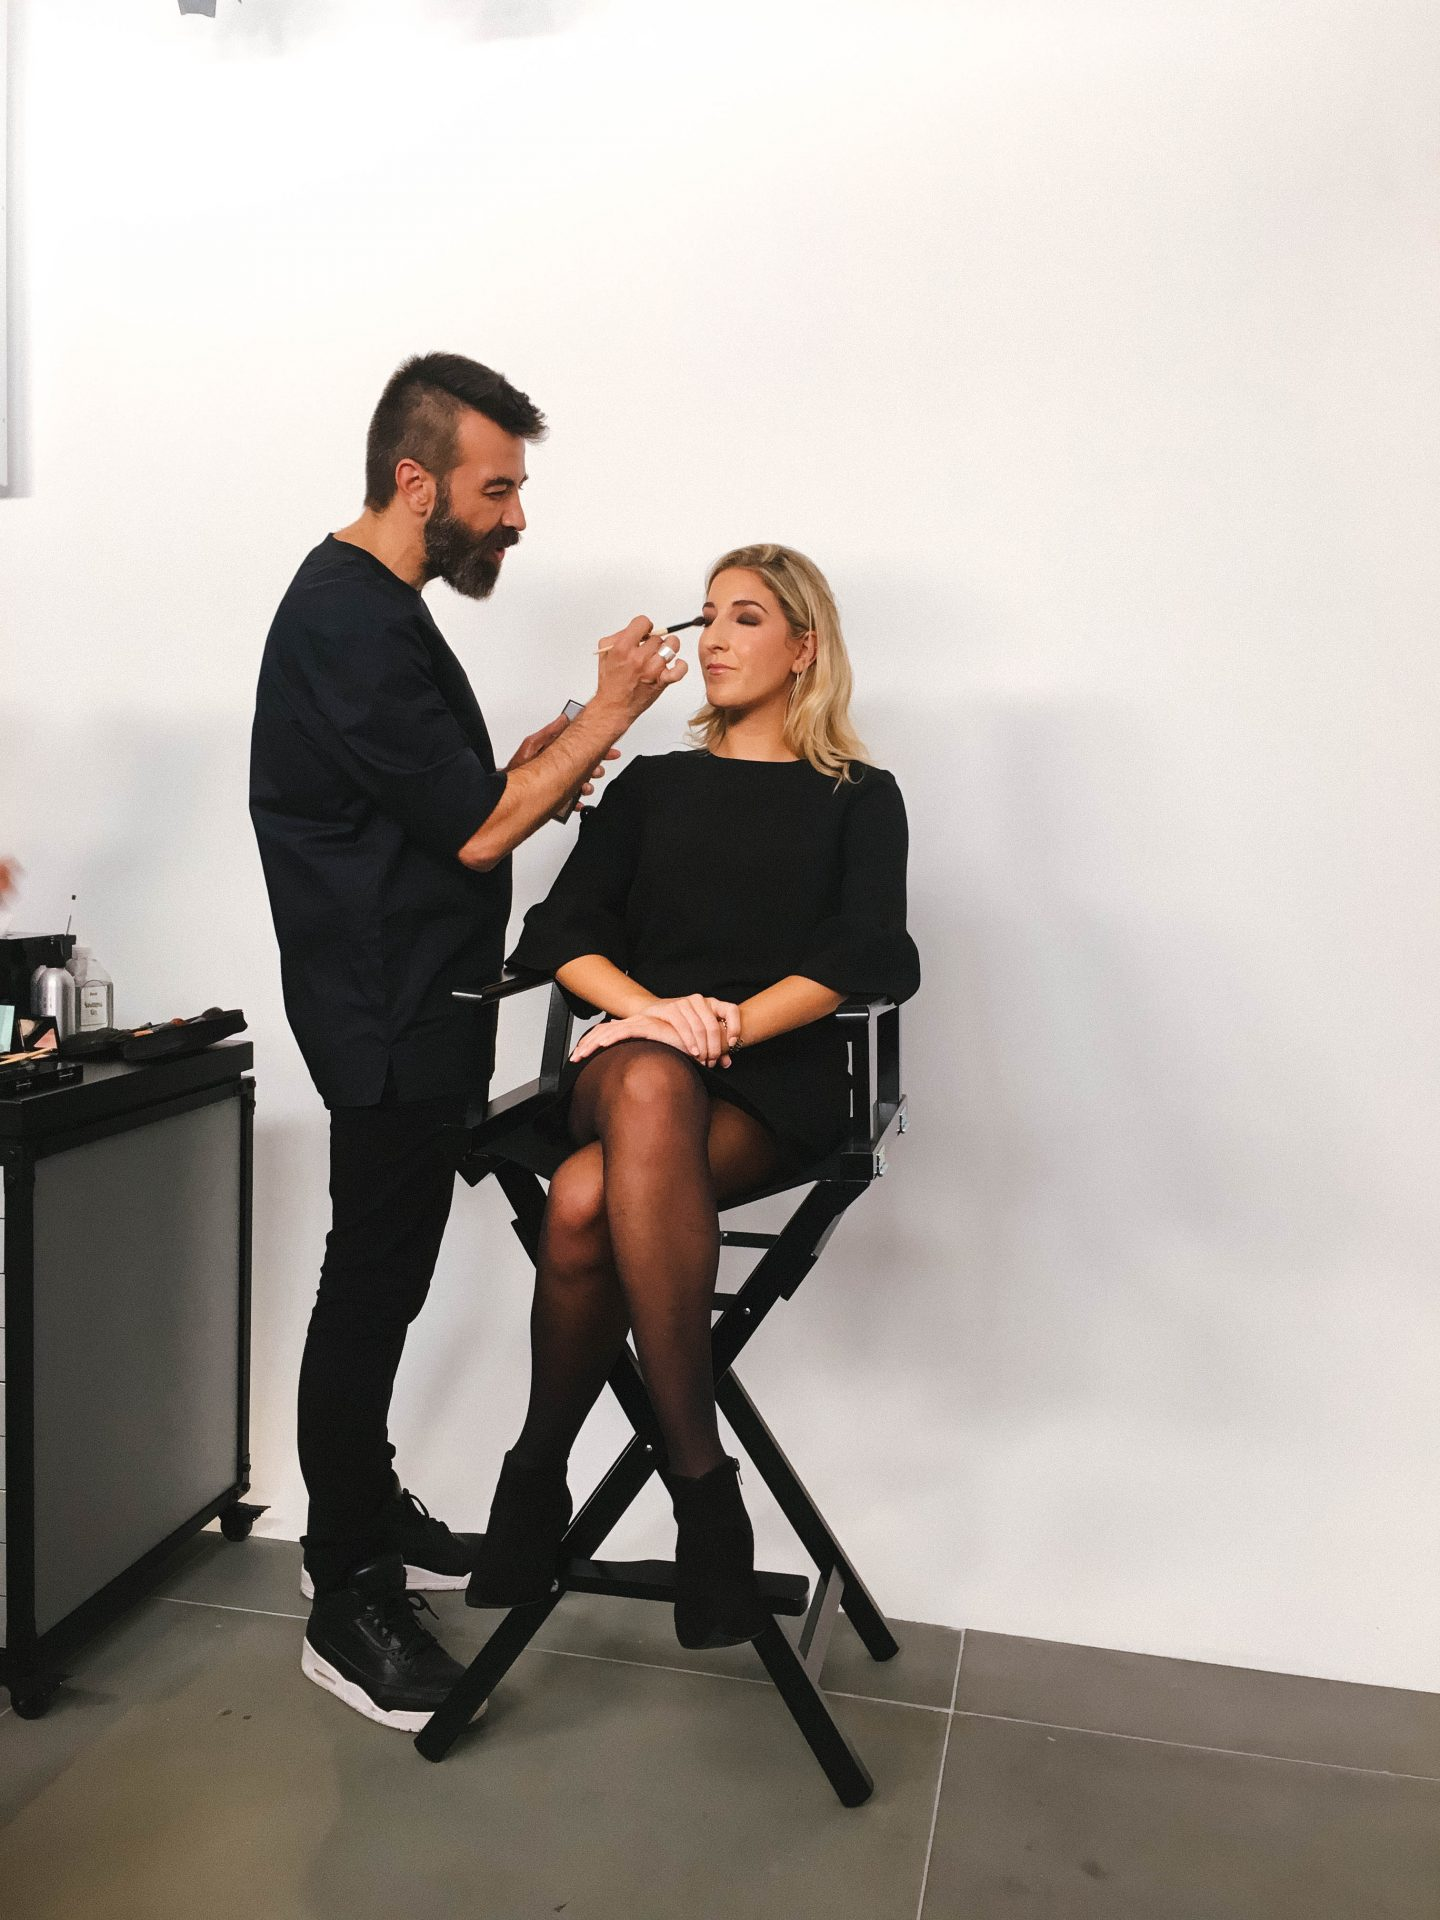 5 SECRET TIPS FROM A BOBBI BROWN PRO